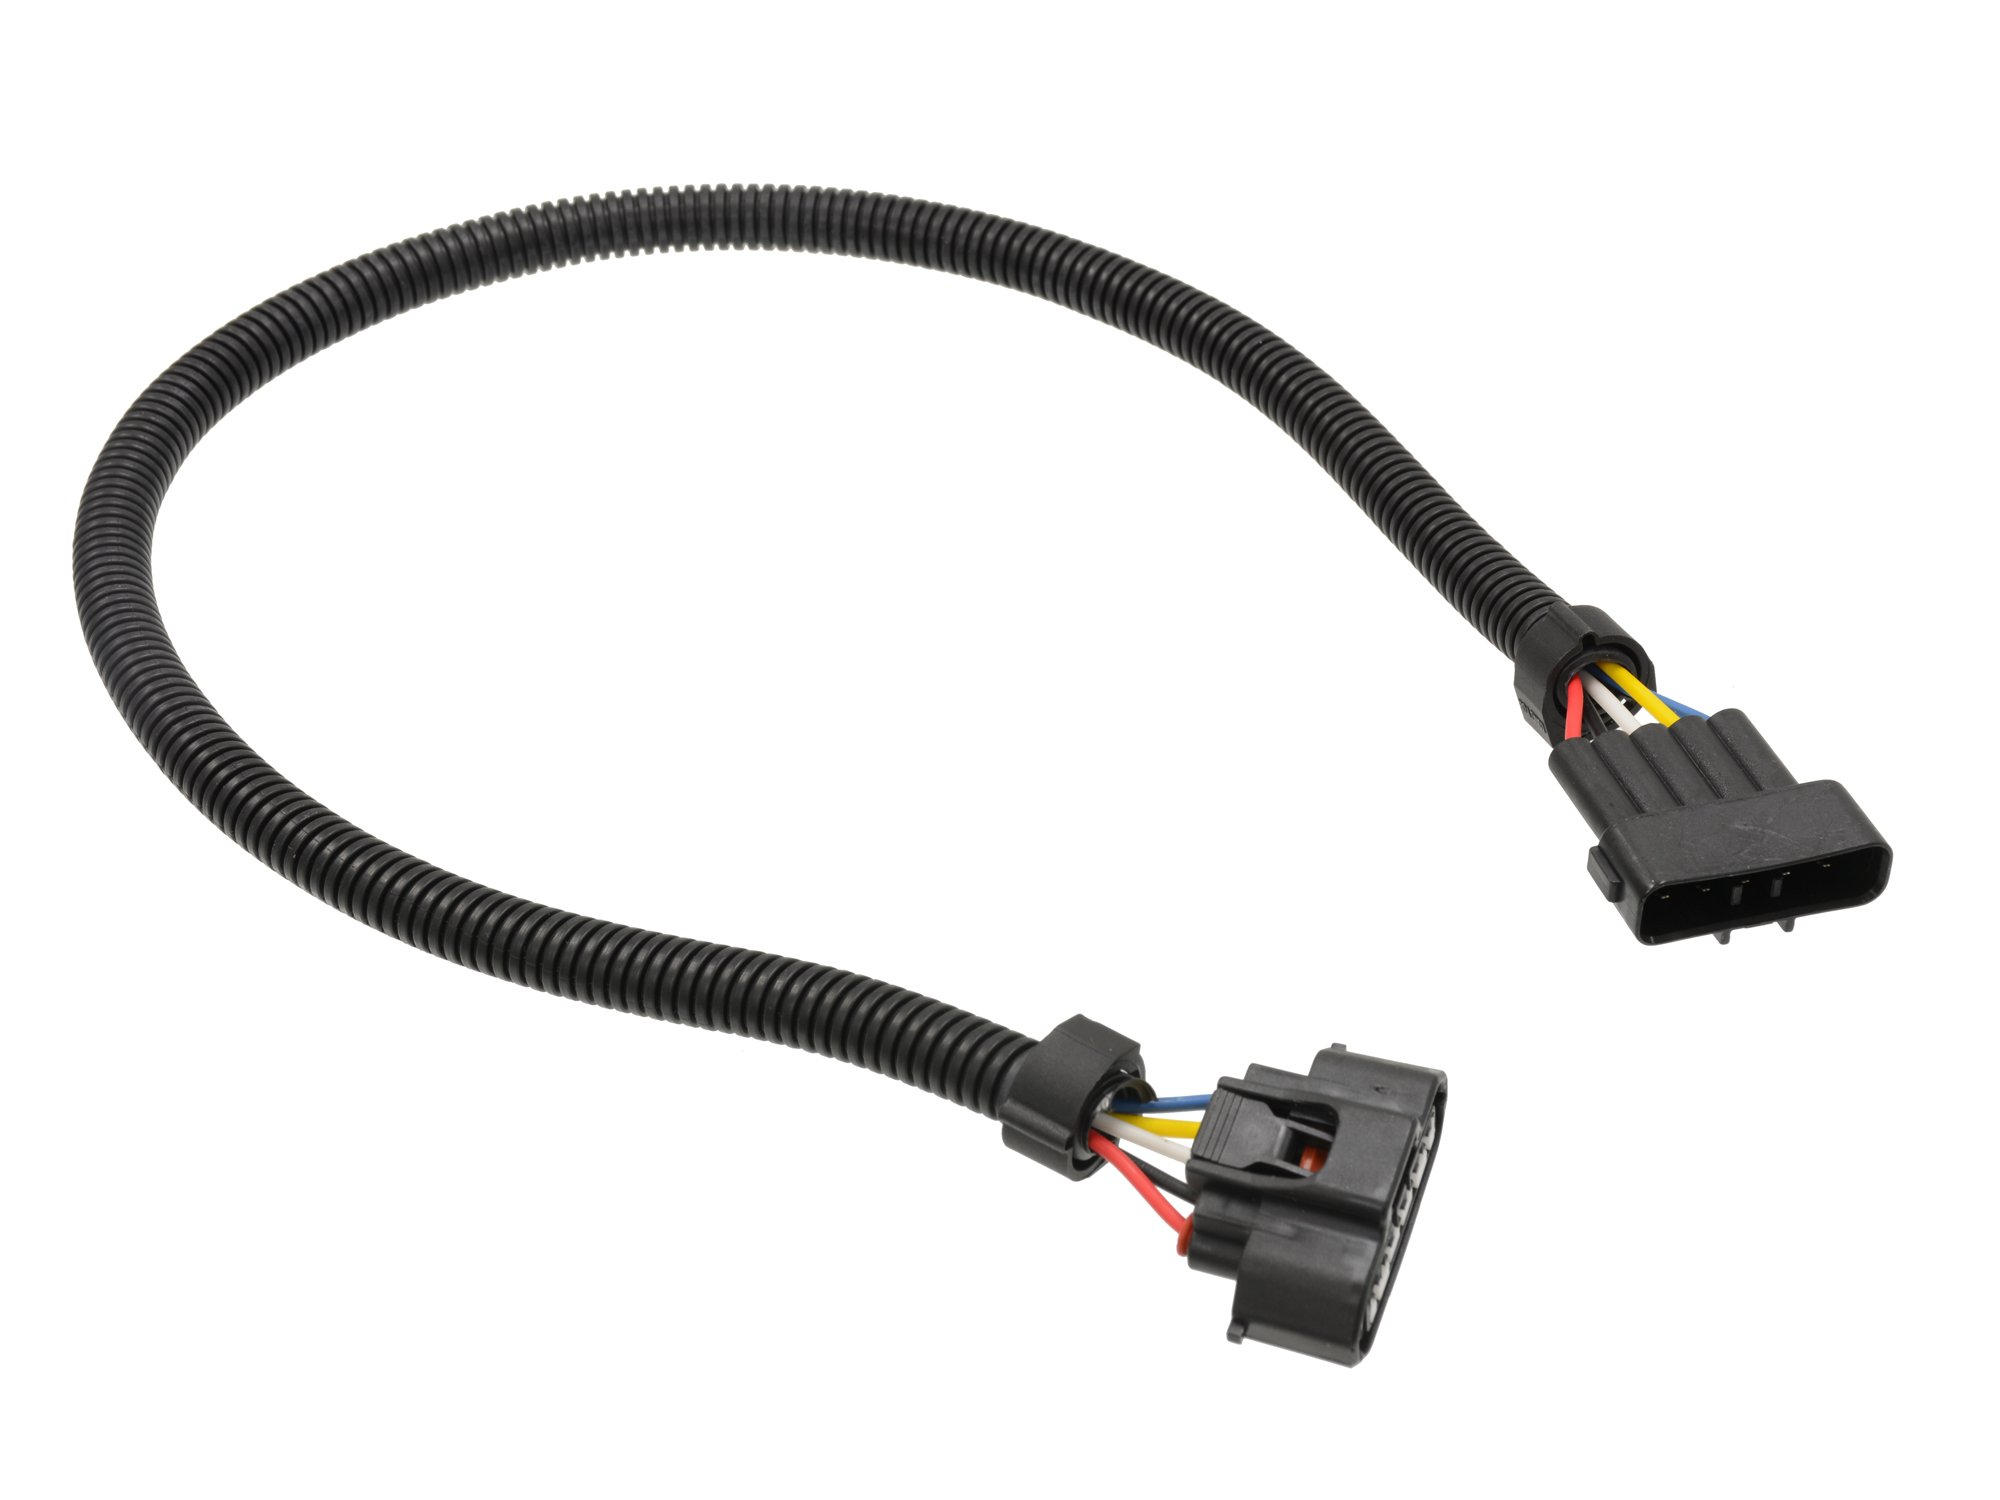 hight resolution of get quotations michigan motorsports mass air flow sensor extension harness 24 fits toyota and denso 5